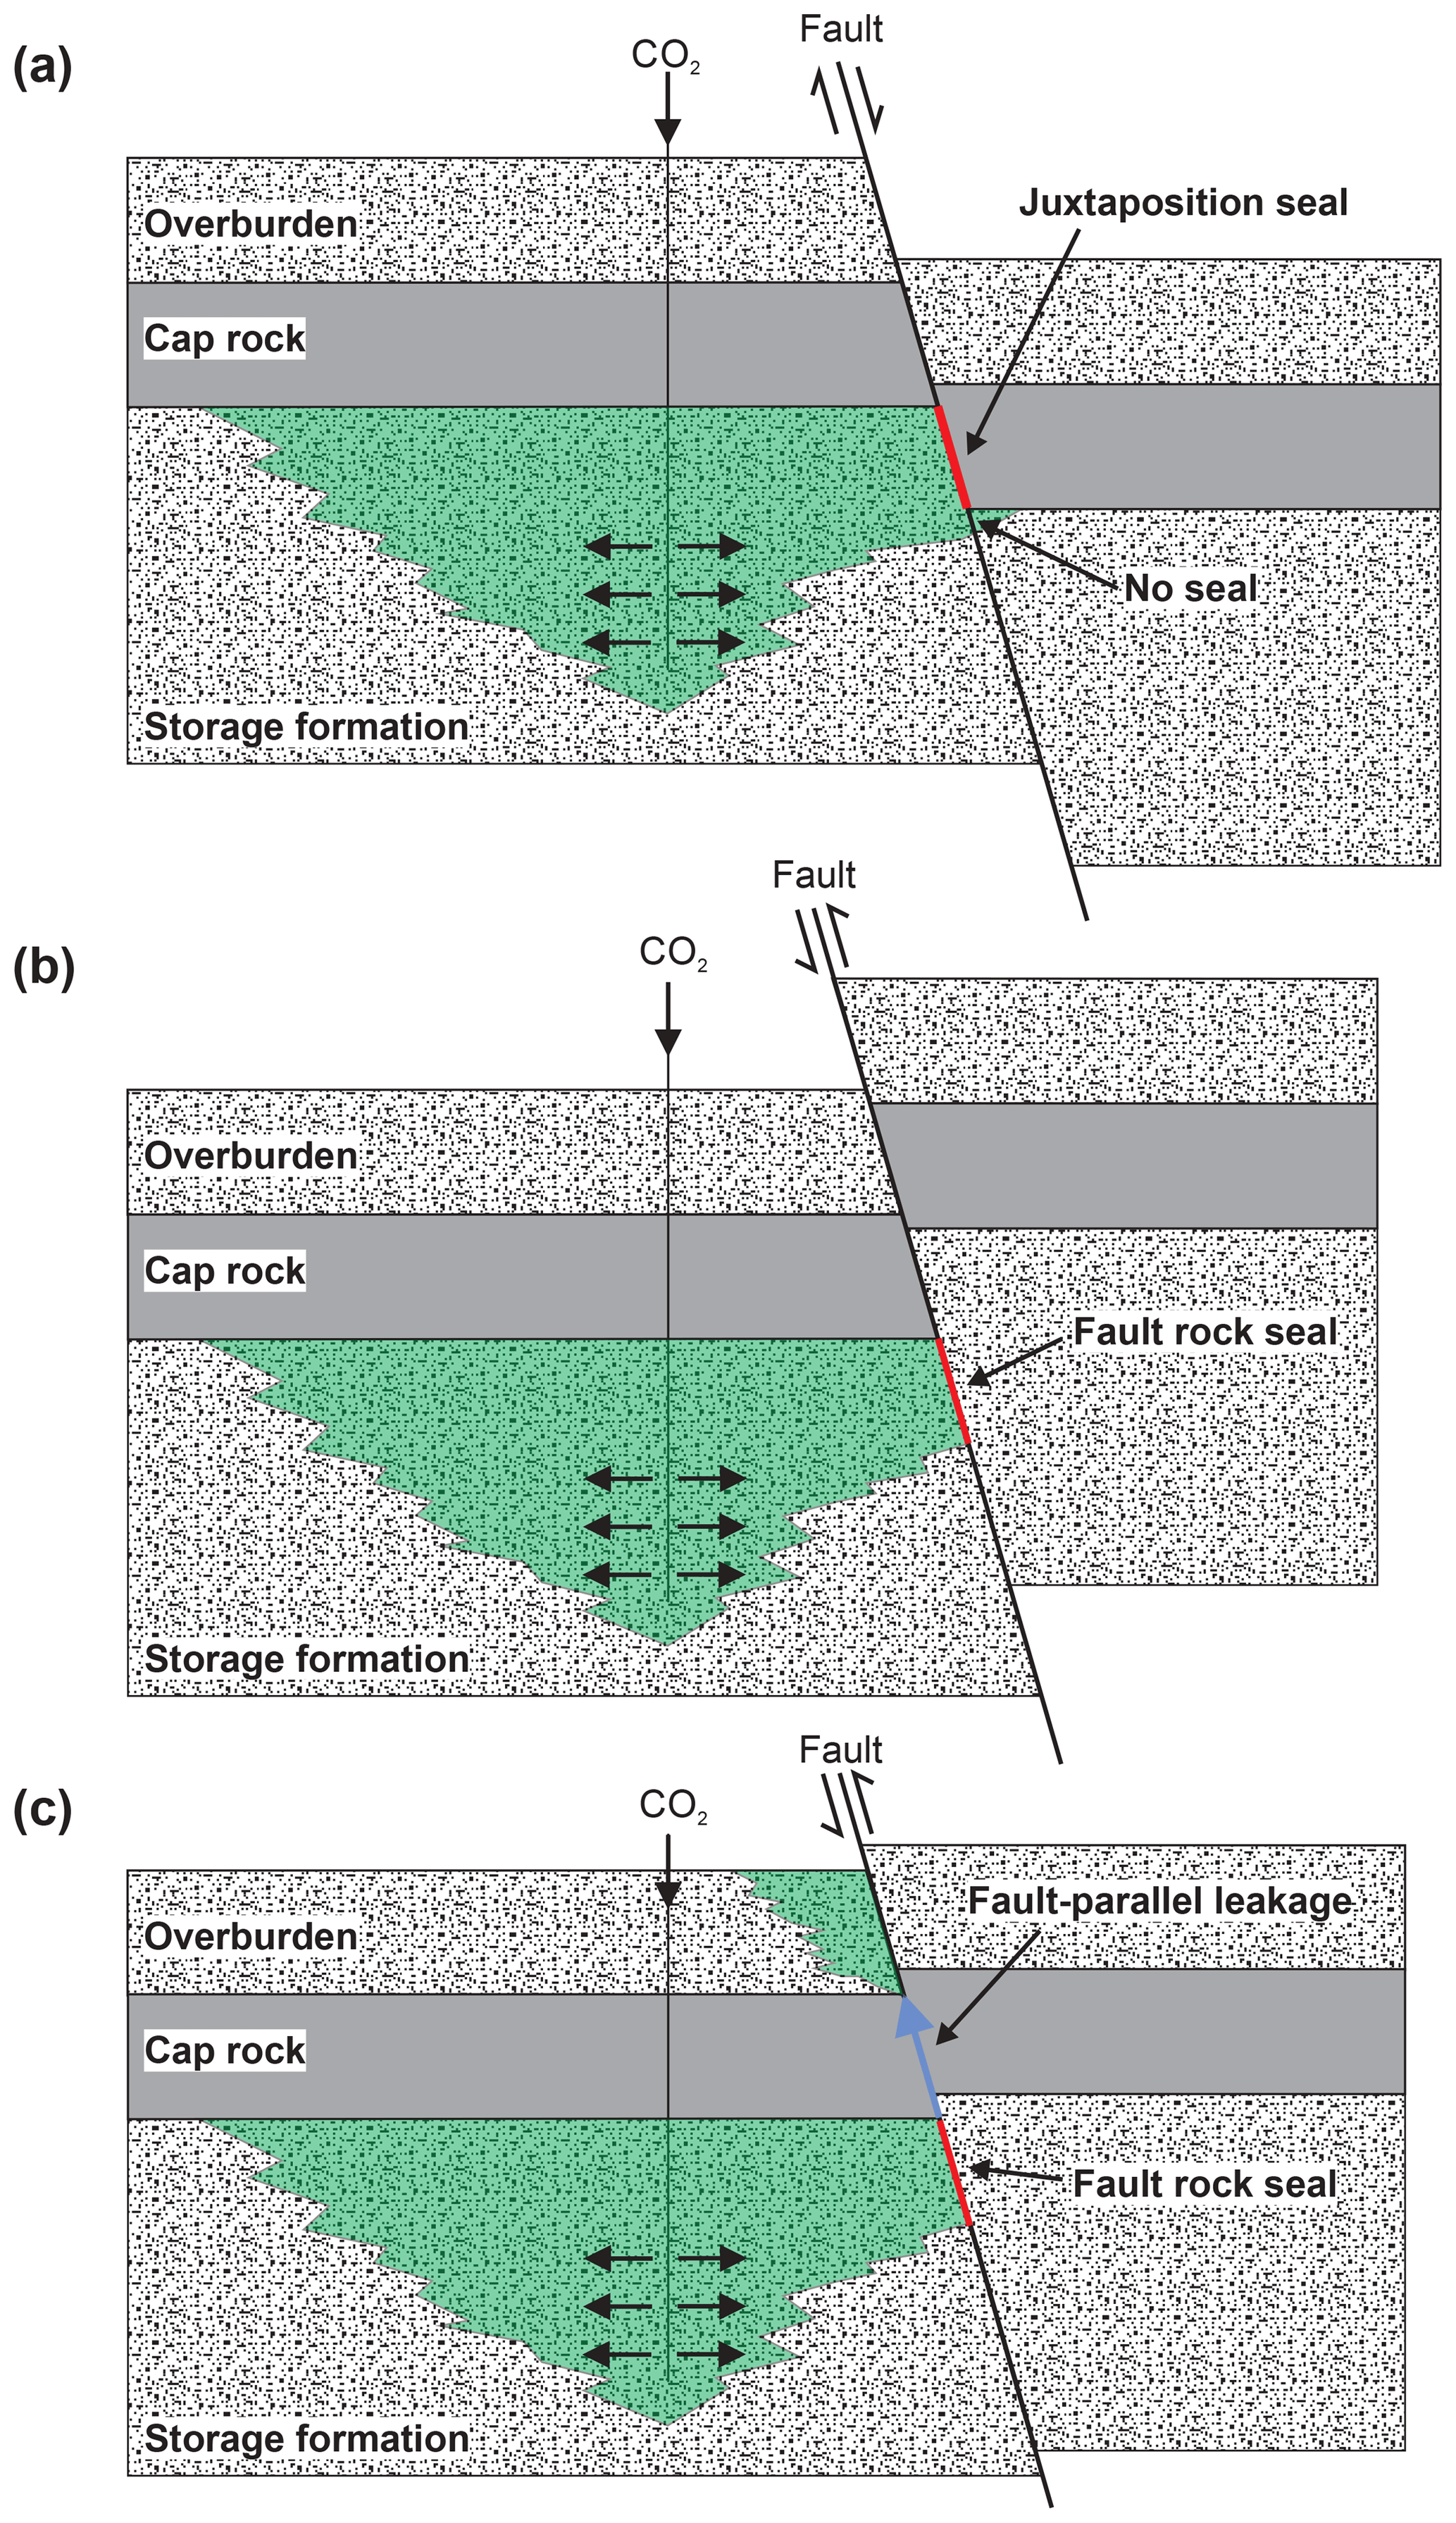 SE - Uncertainty in fault seal parameters: implications for